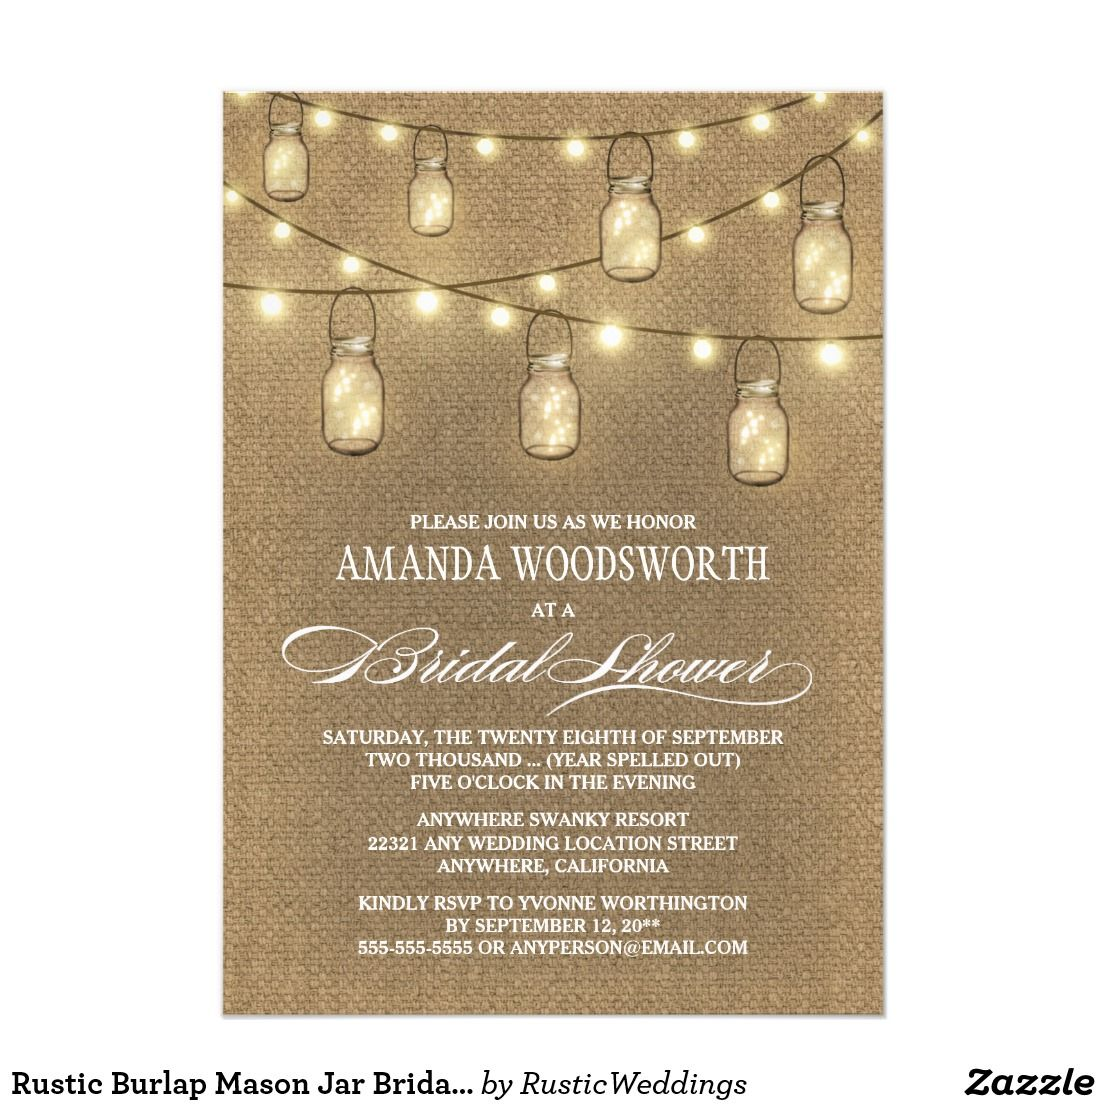 Rustic Burlap Mason Jar Bridal Shower Invitations Burlap Mason